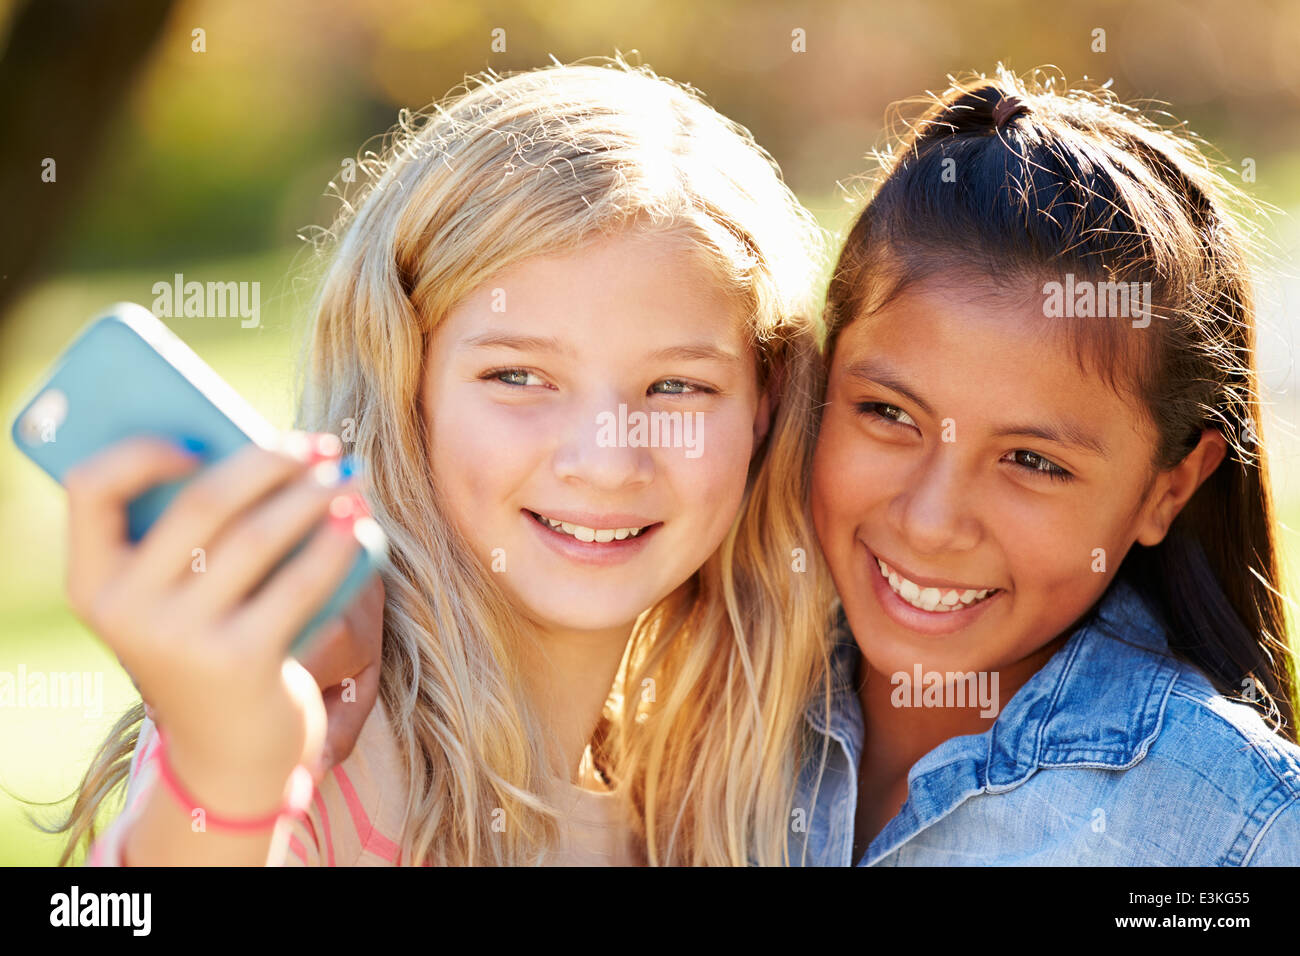 Two Girls Taking Selfie With Mobile Phone - Stock Image